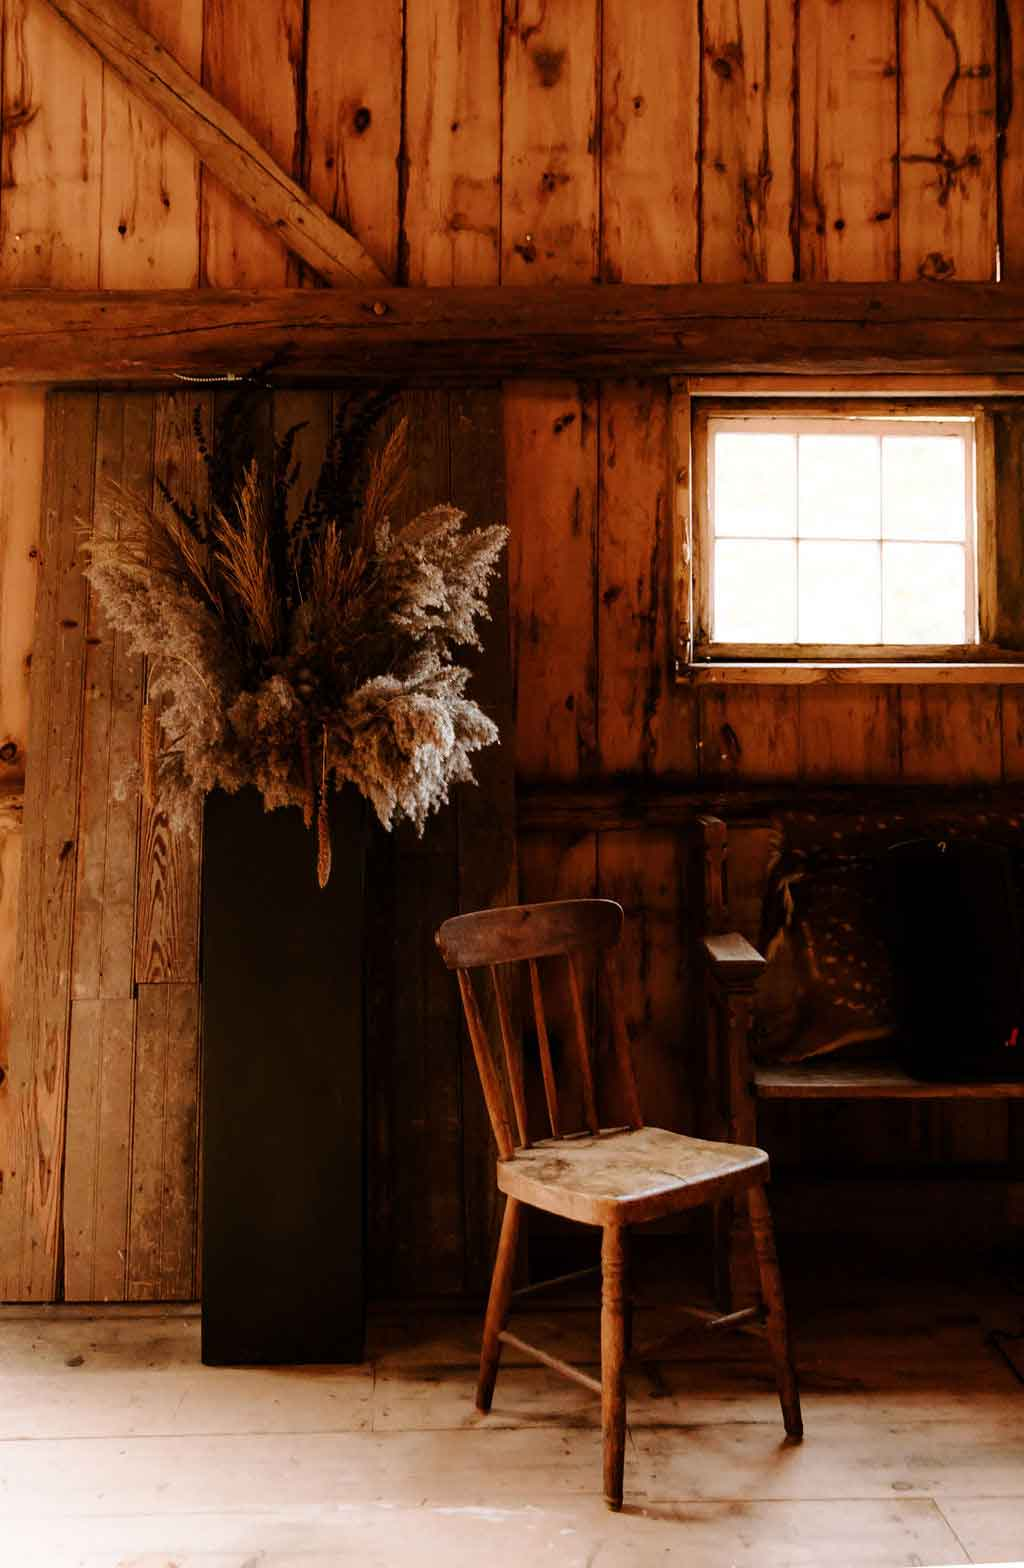 Inside the barn at the Squire Tarbox Inn